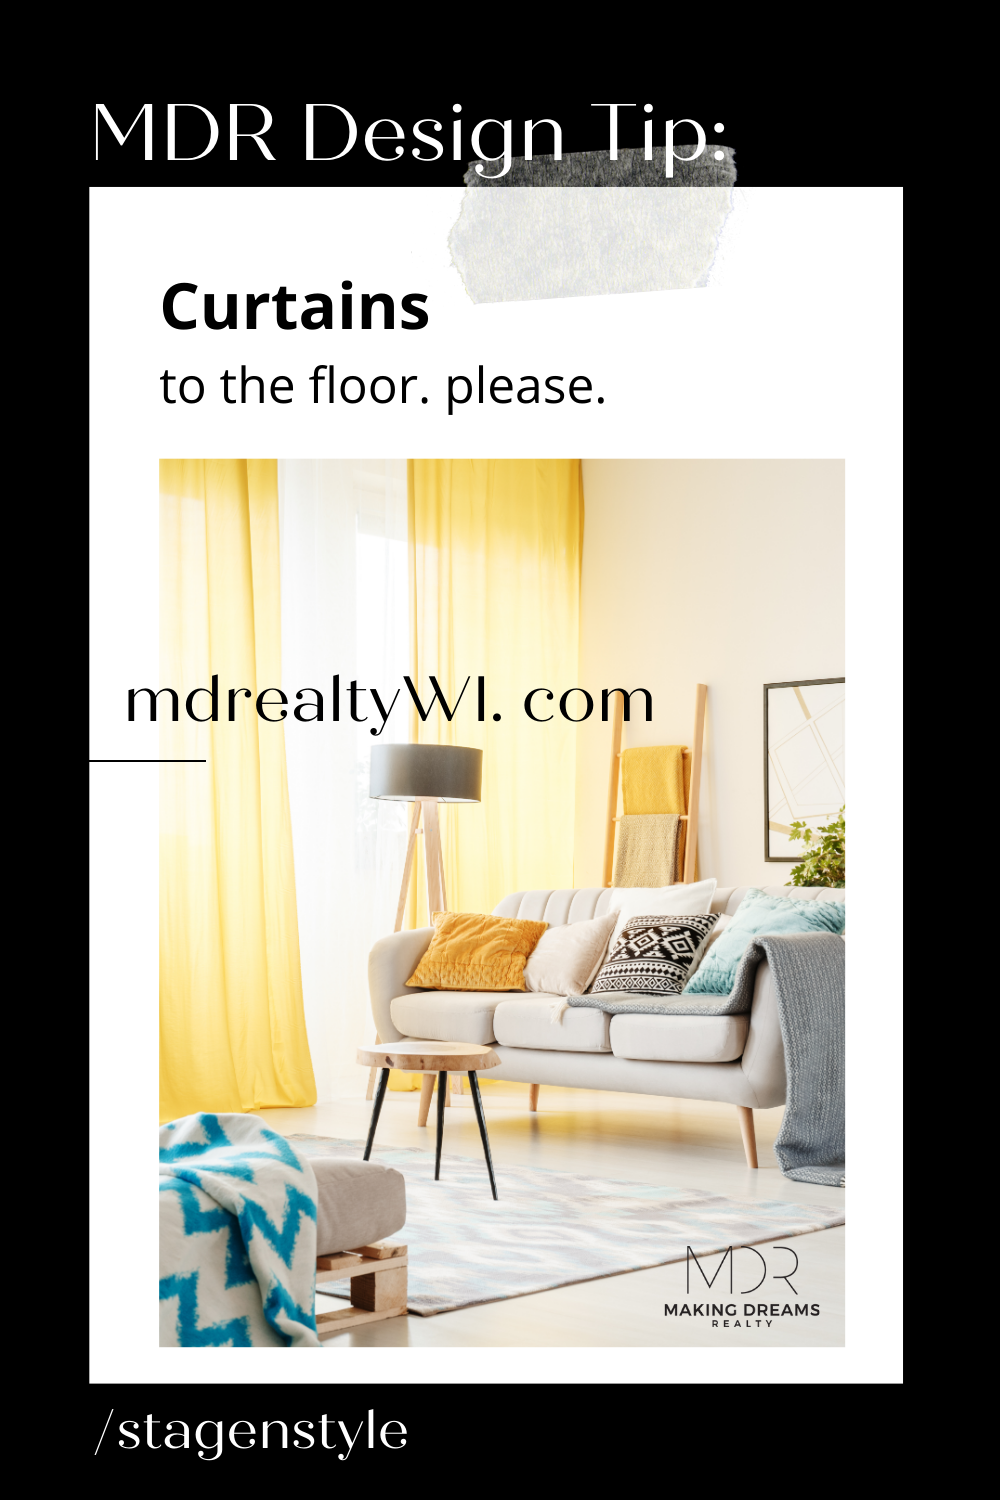 MDR design tip - curtains to the floor